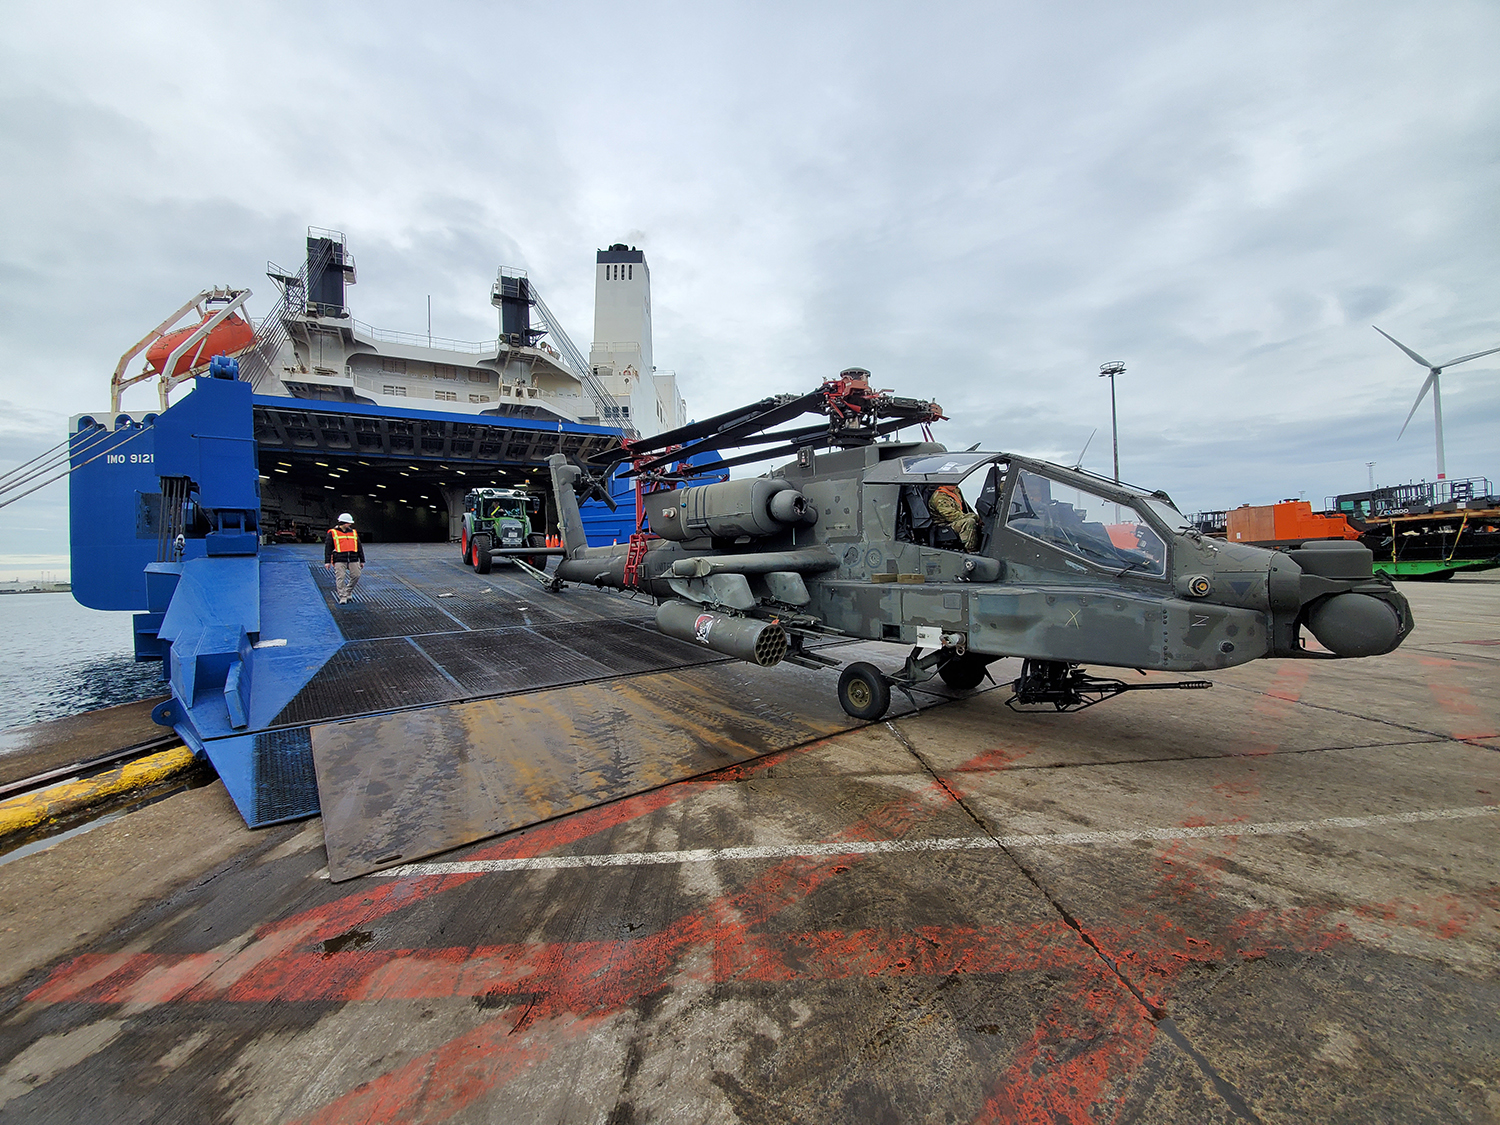 An AH-64 Apache is offloaded from a shipping vessel at the Port of Zeebrugge, Belgium, Oct. 15, 2019. (Sgt. 1st Class Aaron Duncan/Army)